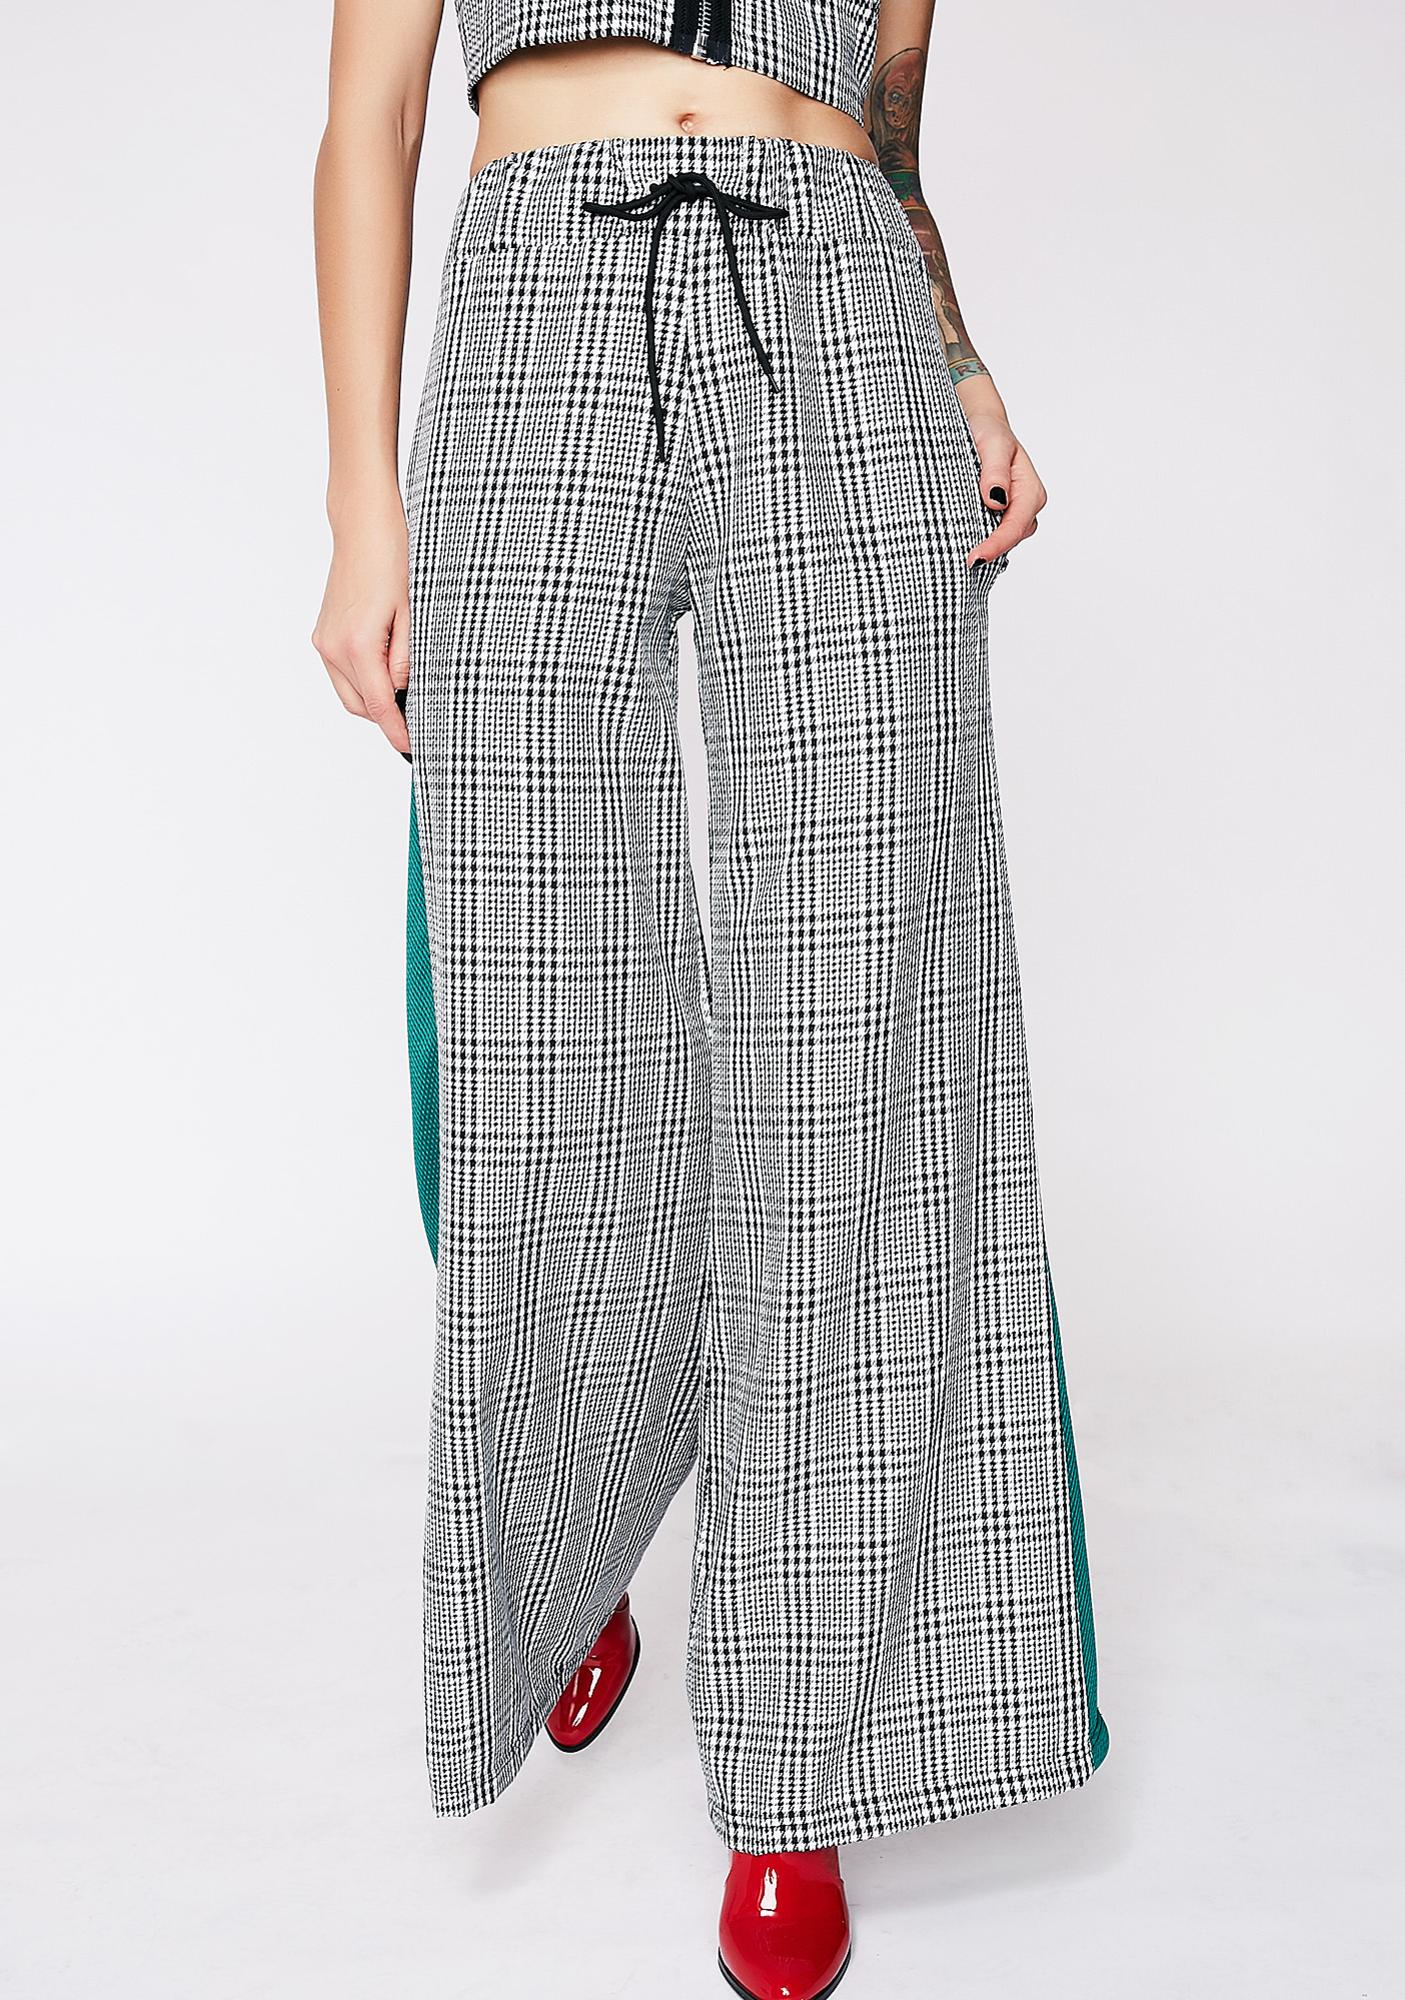 The Ragged Priest Player Trouser